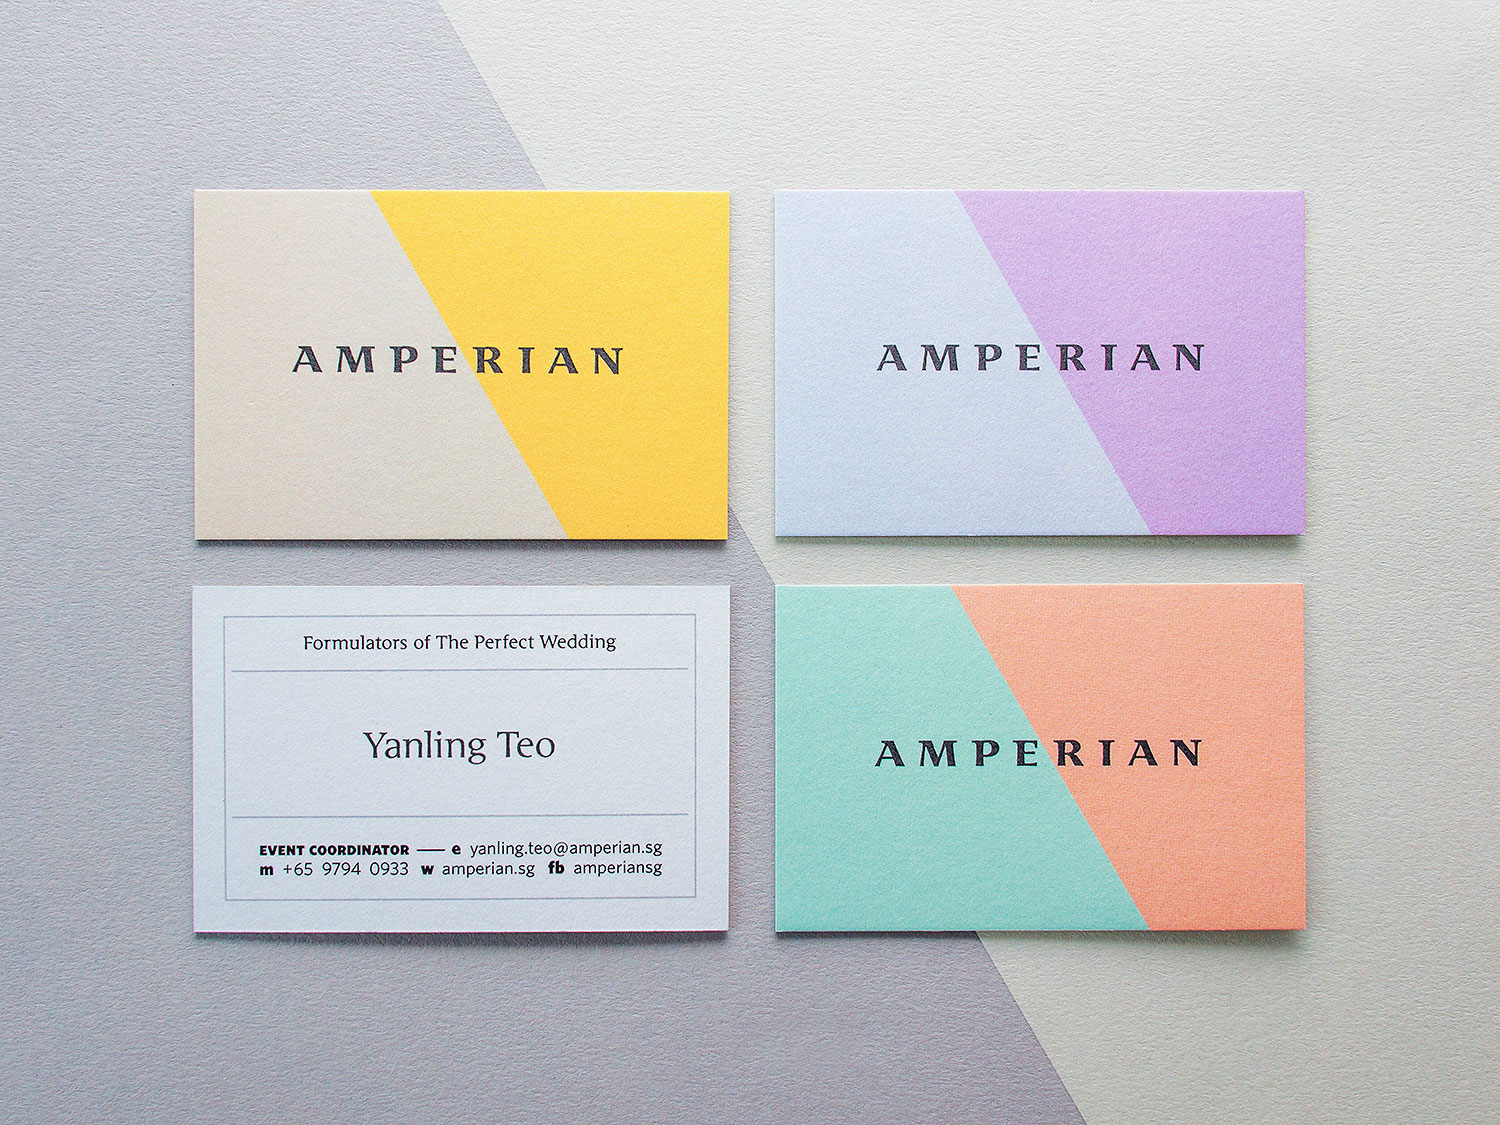 Amperian SG branding corporate identity design - Business cards detail. Photography by BÜRO UFHO.